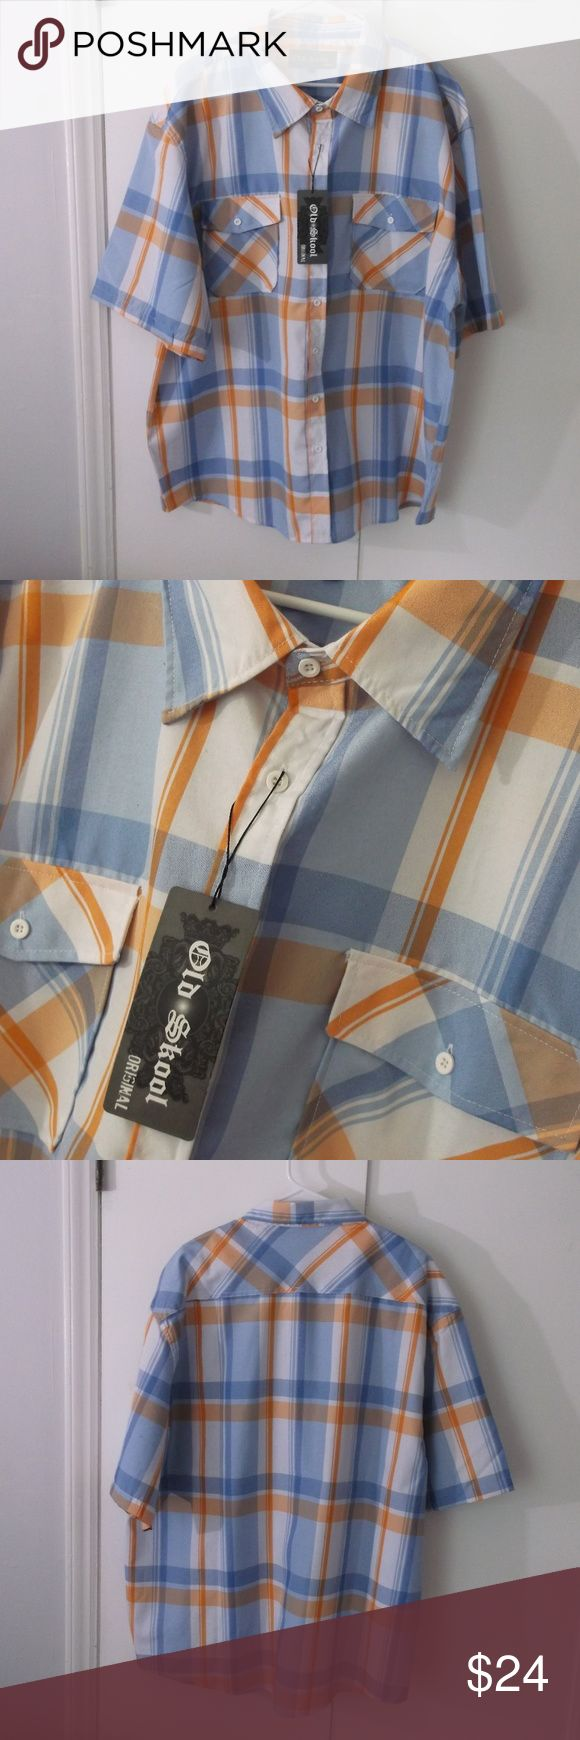 Big Mens Old Skool Orange Blue Plaid Shirt 4X This is a new with tags big men's shirt by Old Skool in a size 4X Cotton polyester fabric Buttons down front, short sleeves 2 buttoned flap pocket on chest White, orange and blue large plaid in color Old Skool Shirts Casual Button Down Shirts